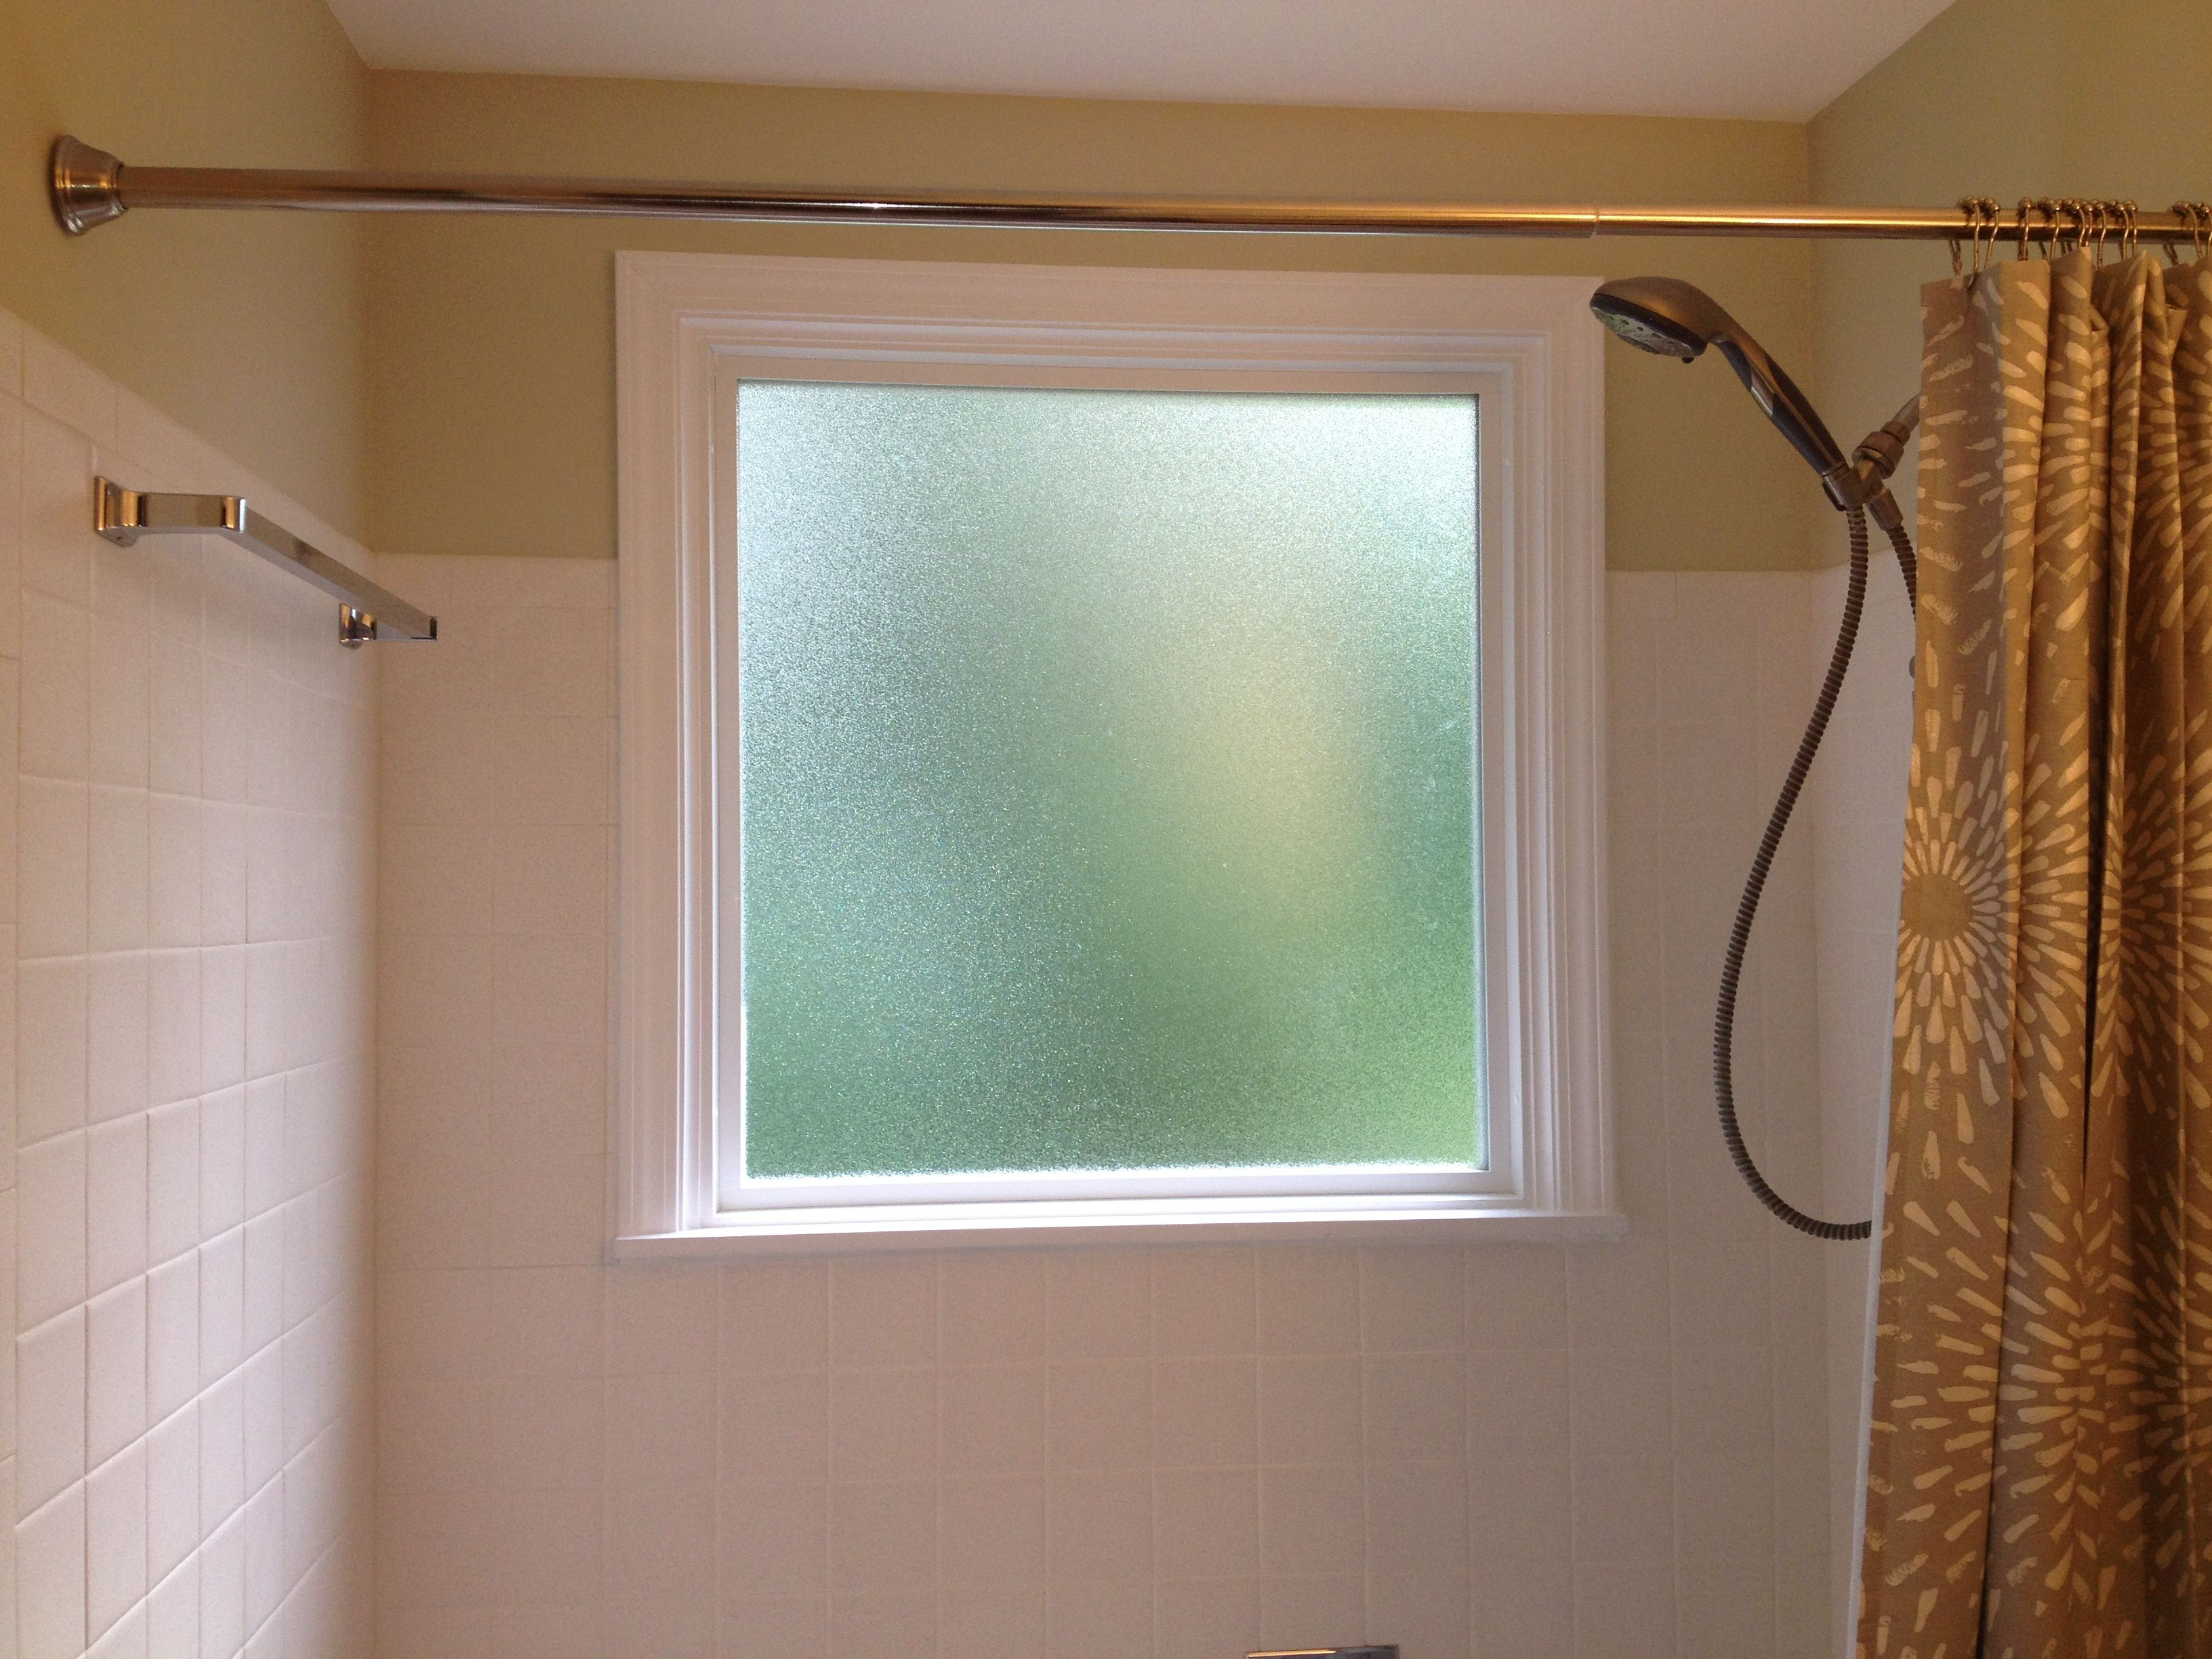 What To Do If You Have A Window In Your Shower..... Install A Vinyl Window  With Privacy Glass And Wrap It With Vinyl Trim. Caulk The Seams To Make It  ...